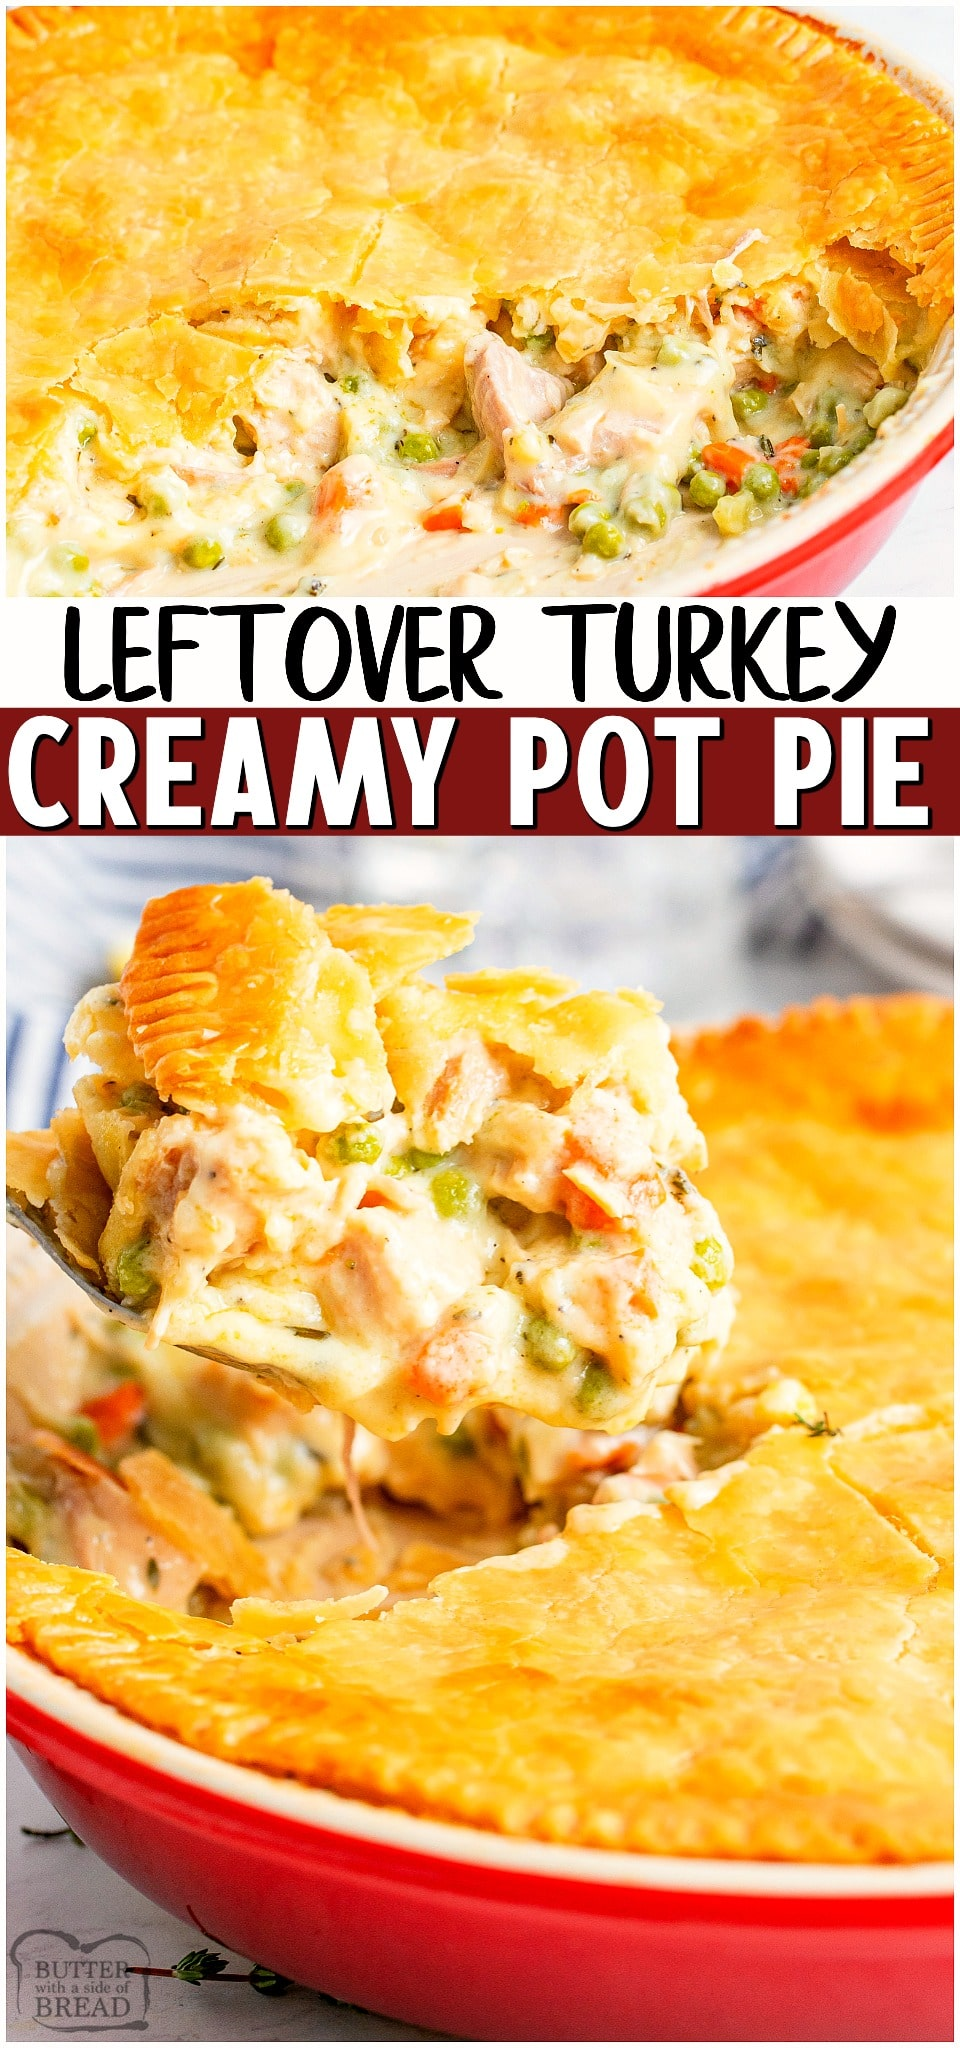 Turkey pot pie made with tender bits of turkey & vegetables in a creamy gravy topped with a crisp golden pie crust. Easy comfort food recipe to make that's perfect for using up leftover turkey!